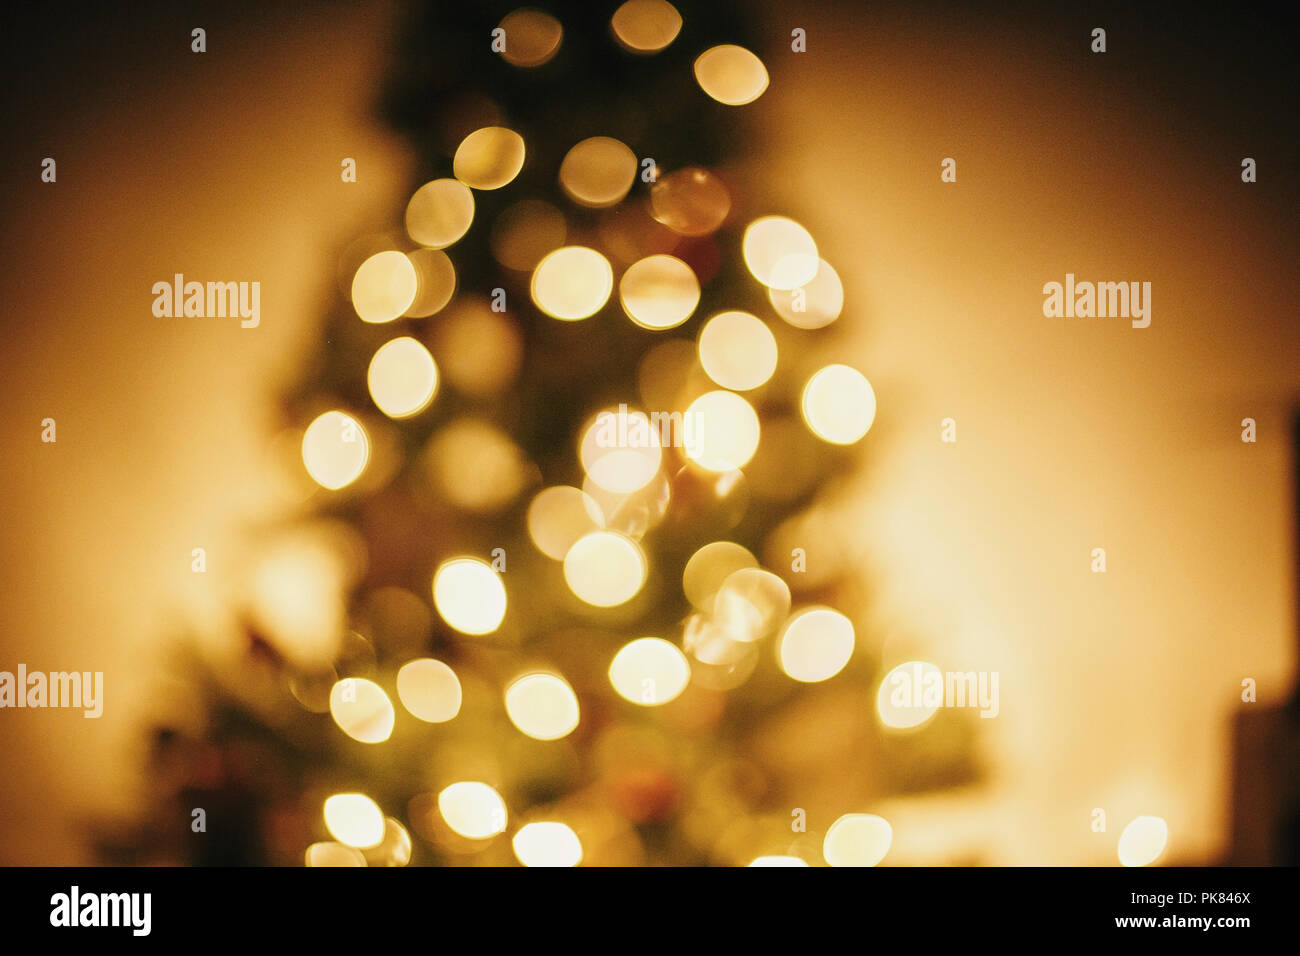 beautiful christmas tree golden lights in festive room. christmas abstract background,  blur defocused bokeh of yellow glowing decoration on christmas - Stock Image